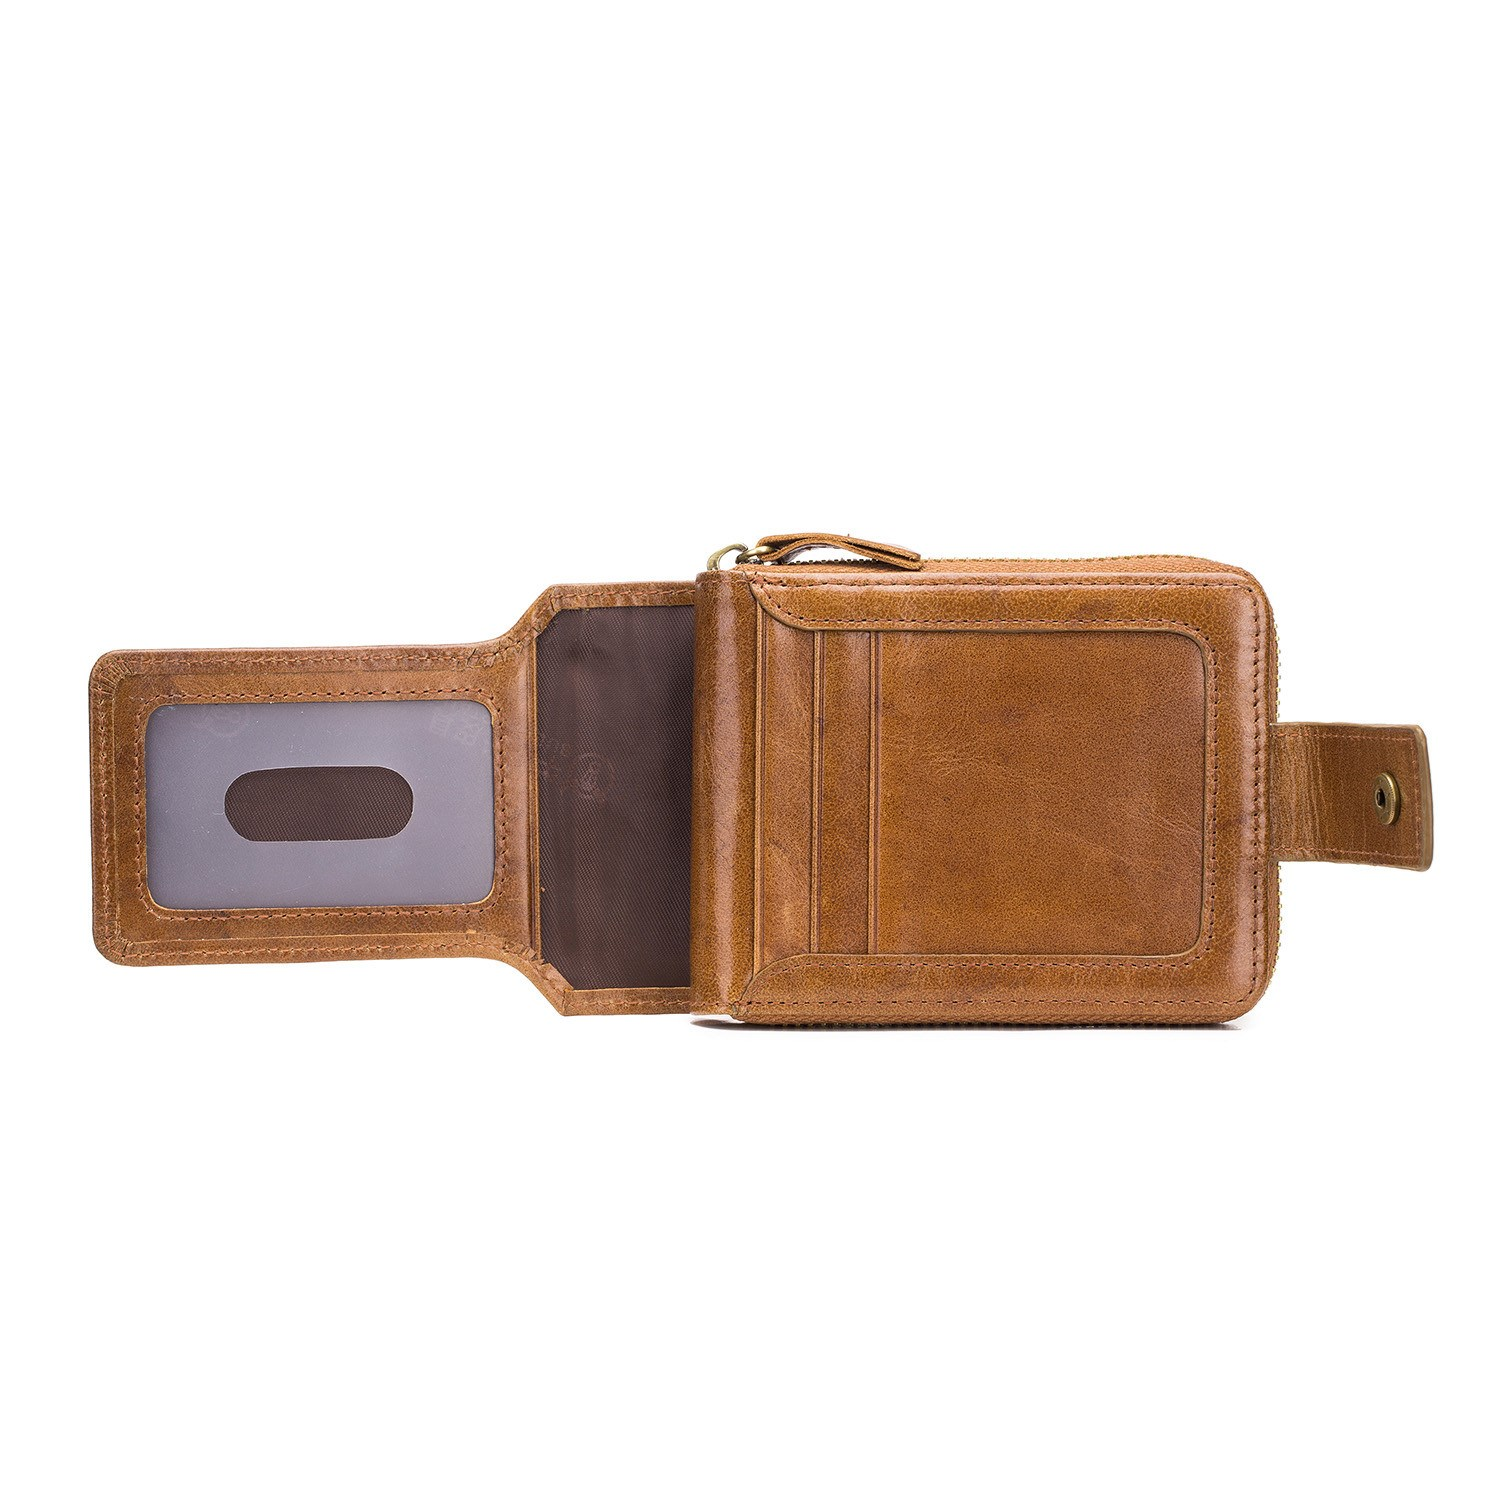 Ericdress Unisex Leather Standard Wallet Wallets